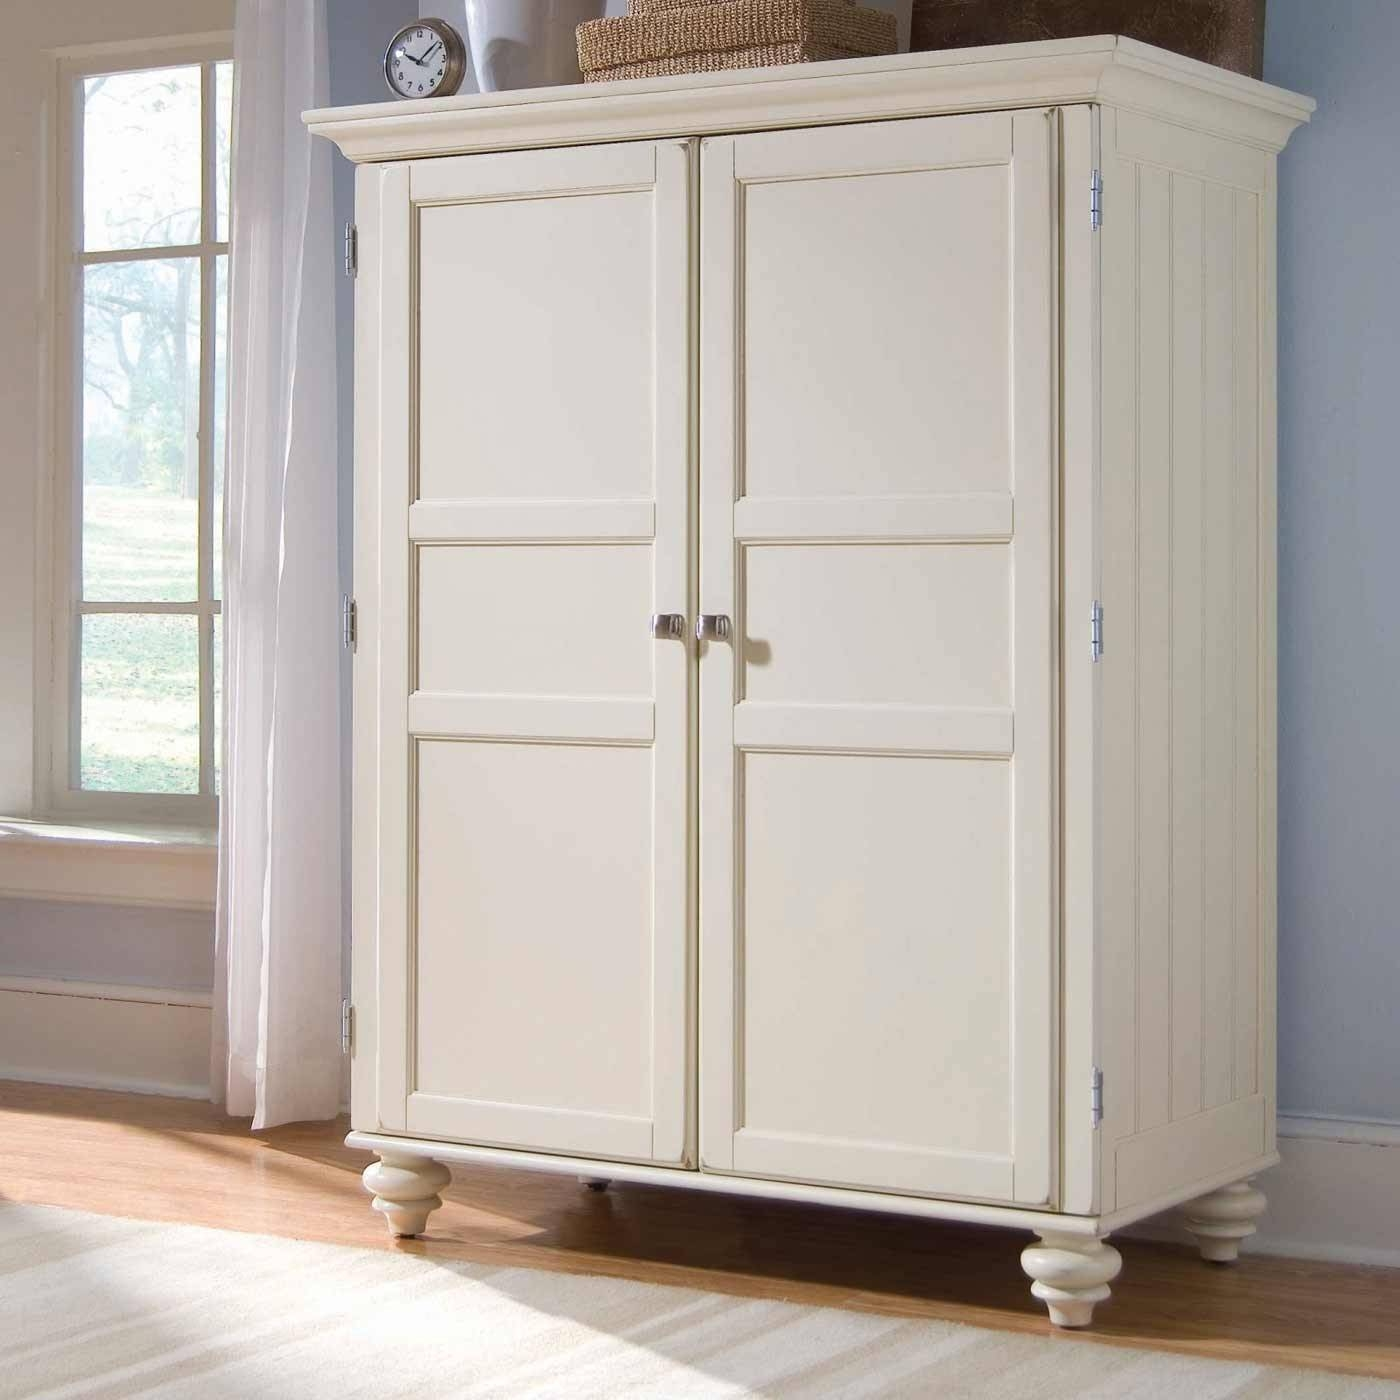 Elegant White Armoire — Liberty Interior throughout Cheap White Wardrobes (Image 4 of 15)